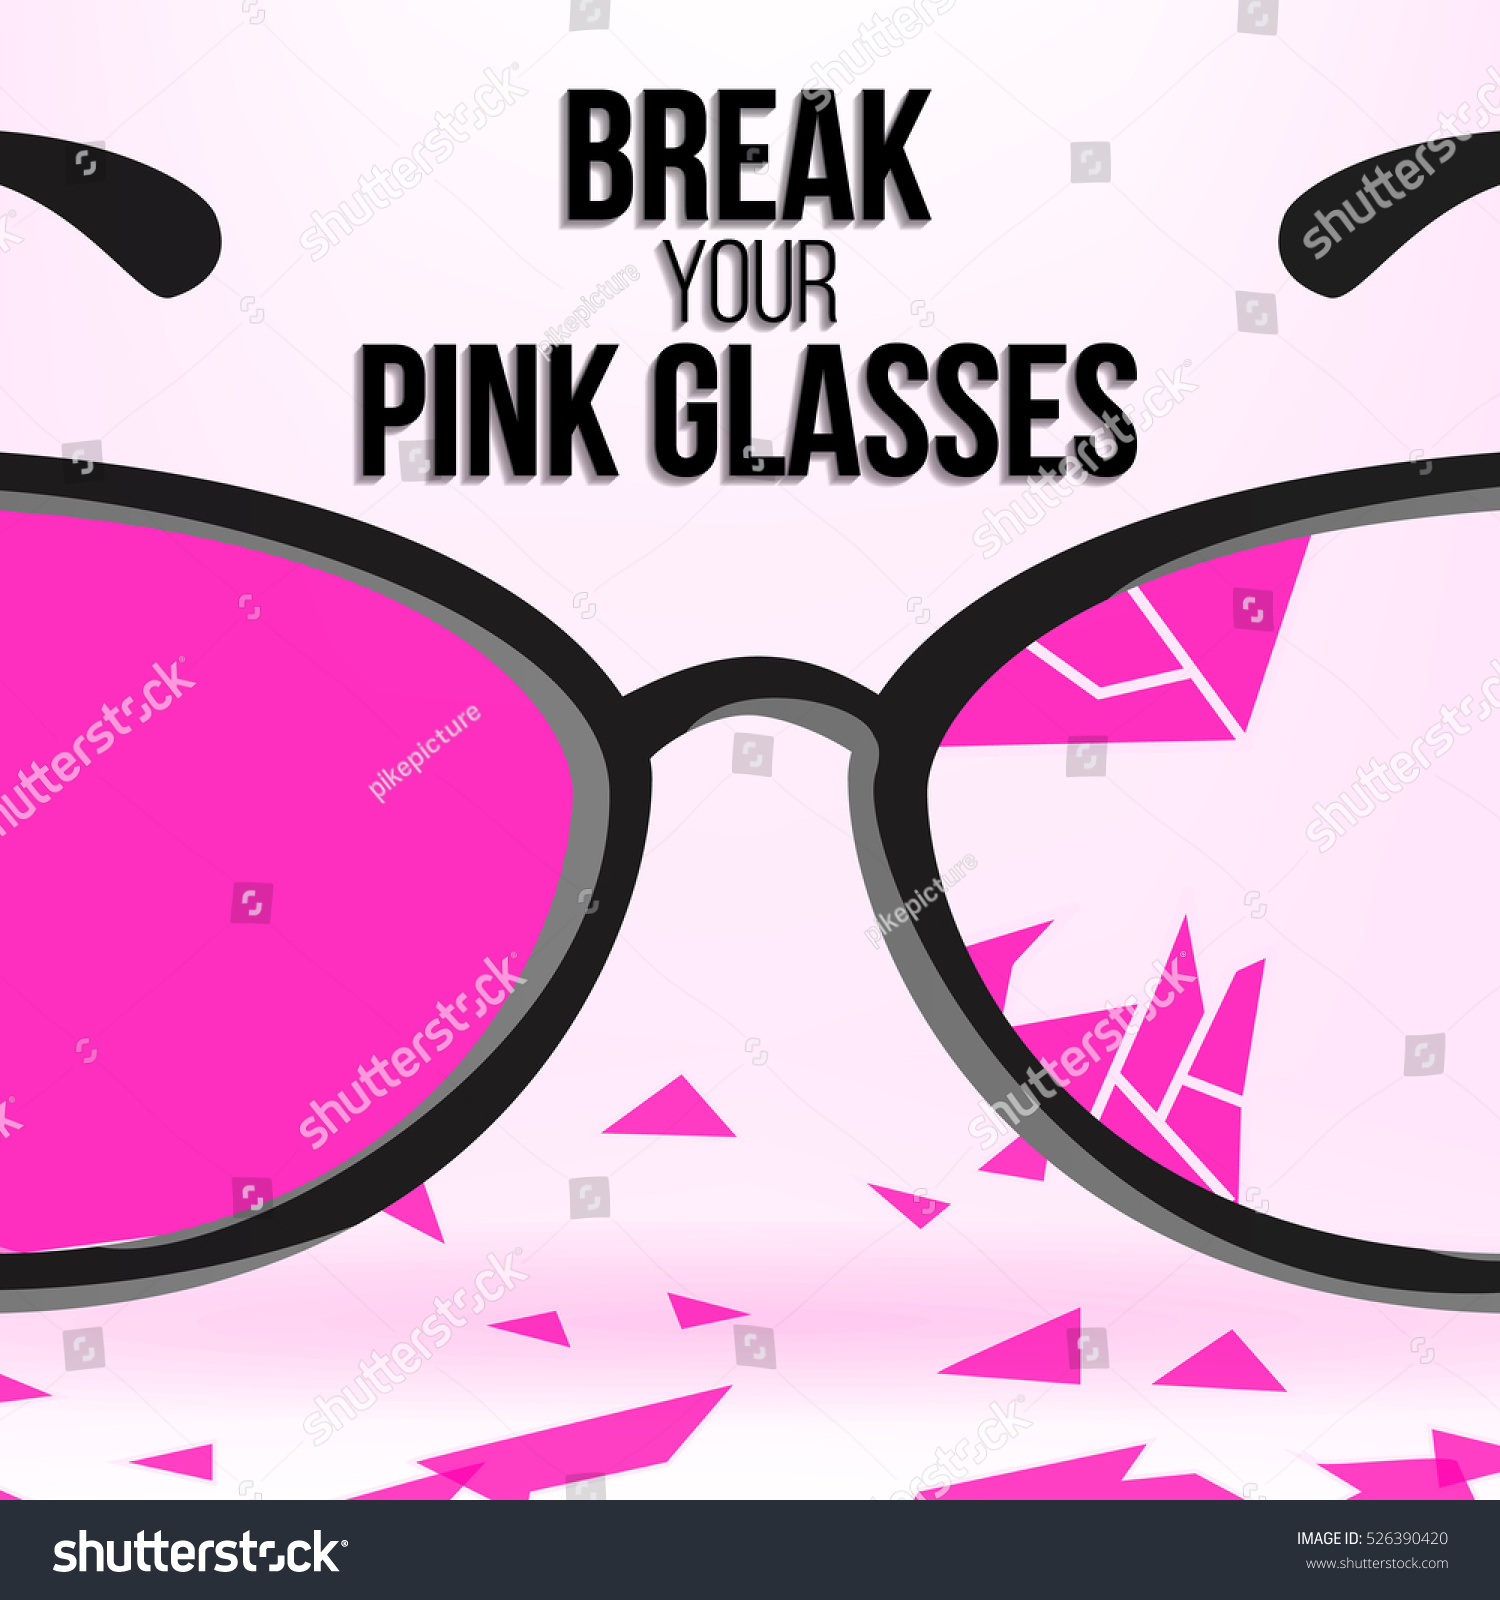 Break Your Pink Glasses Motivation Quote Stock Vector 526390420 ...